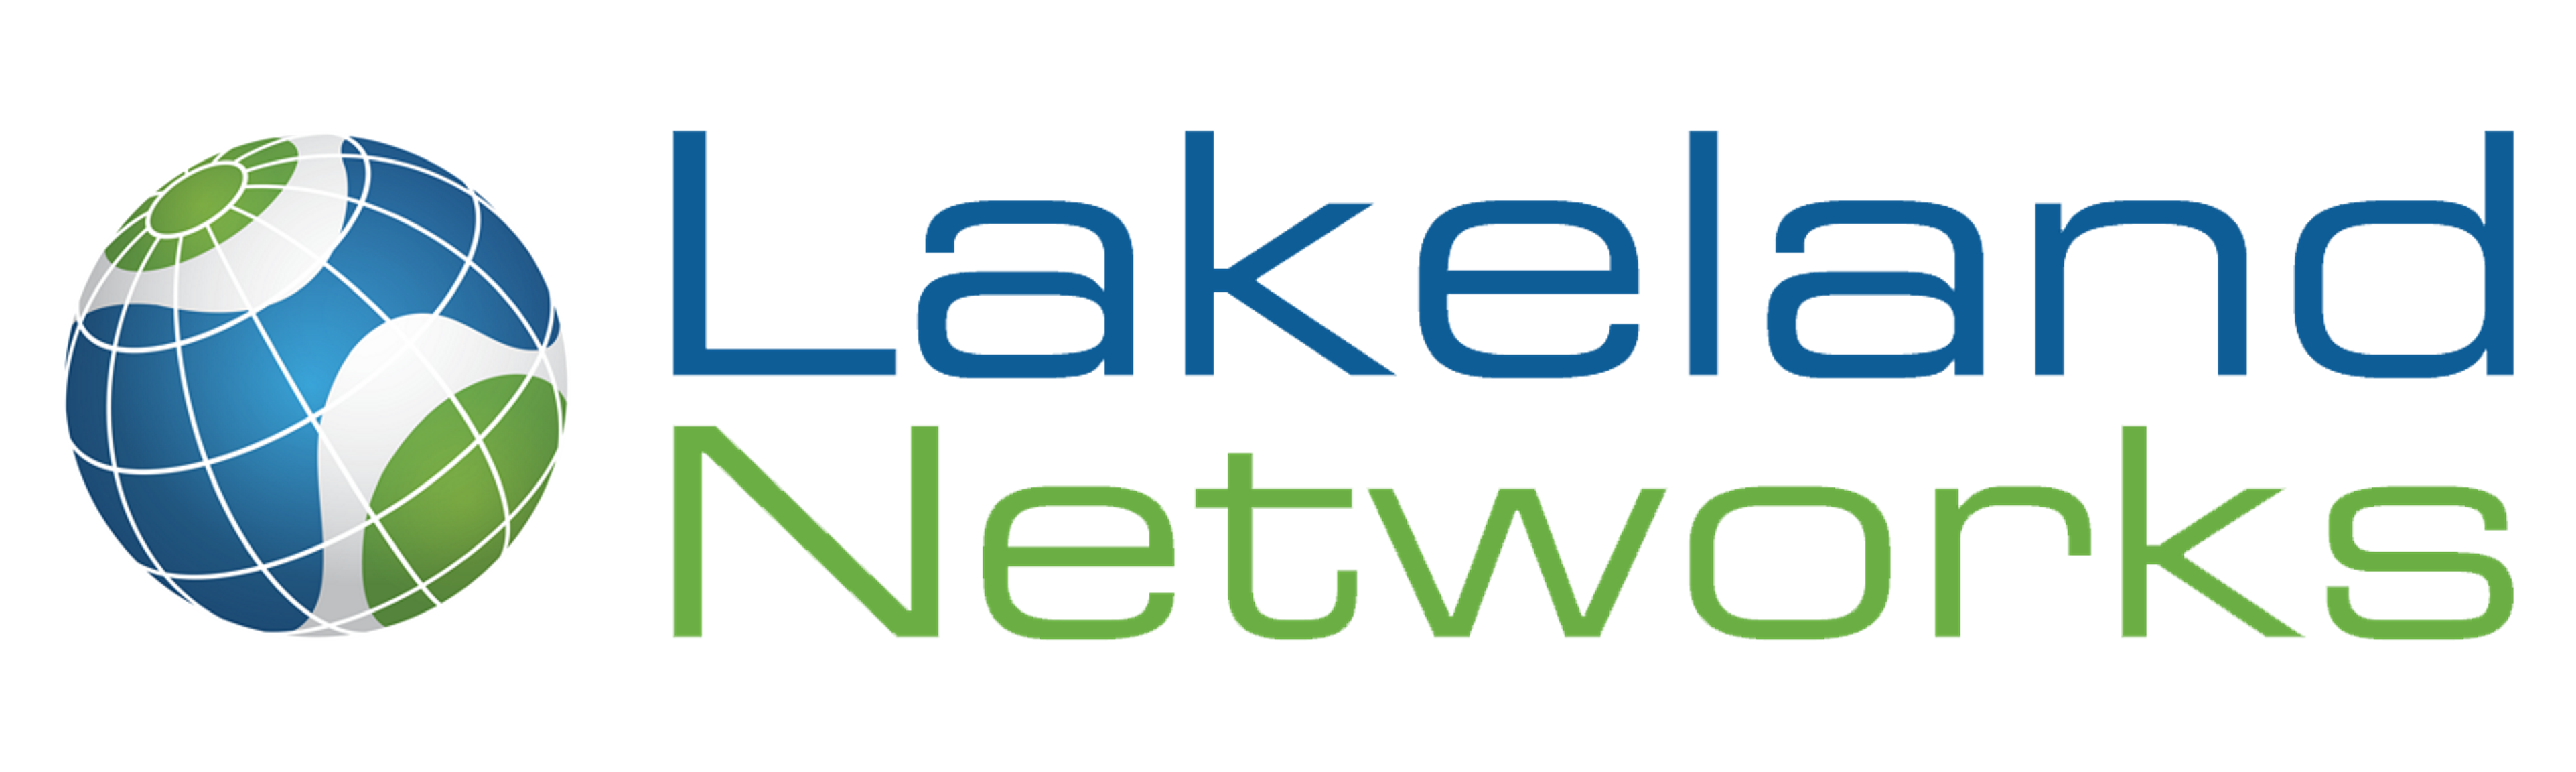 lakeland-networks-logo